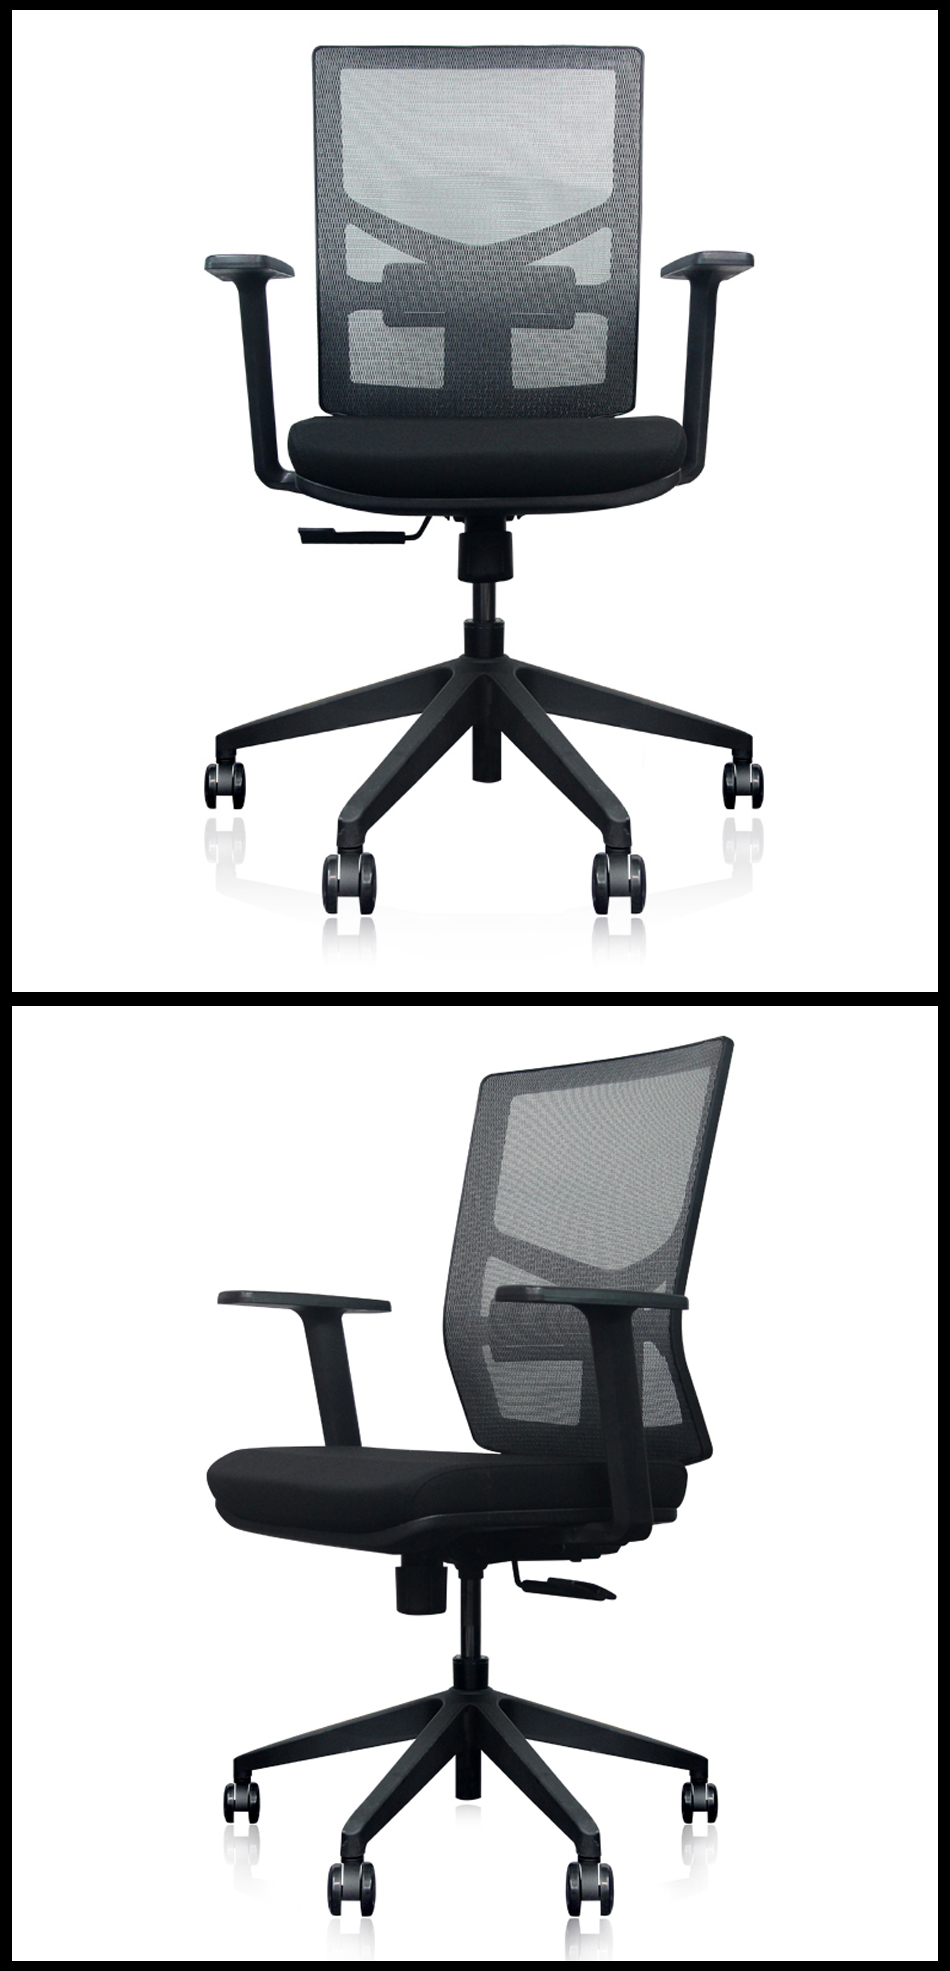 office-chair_08